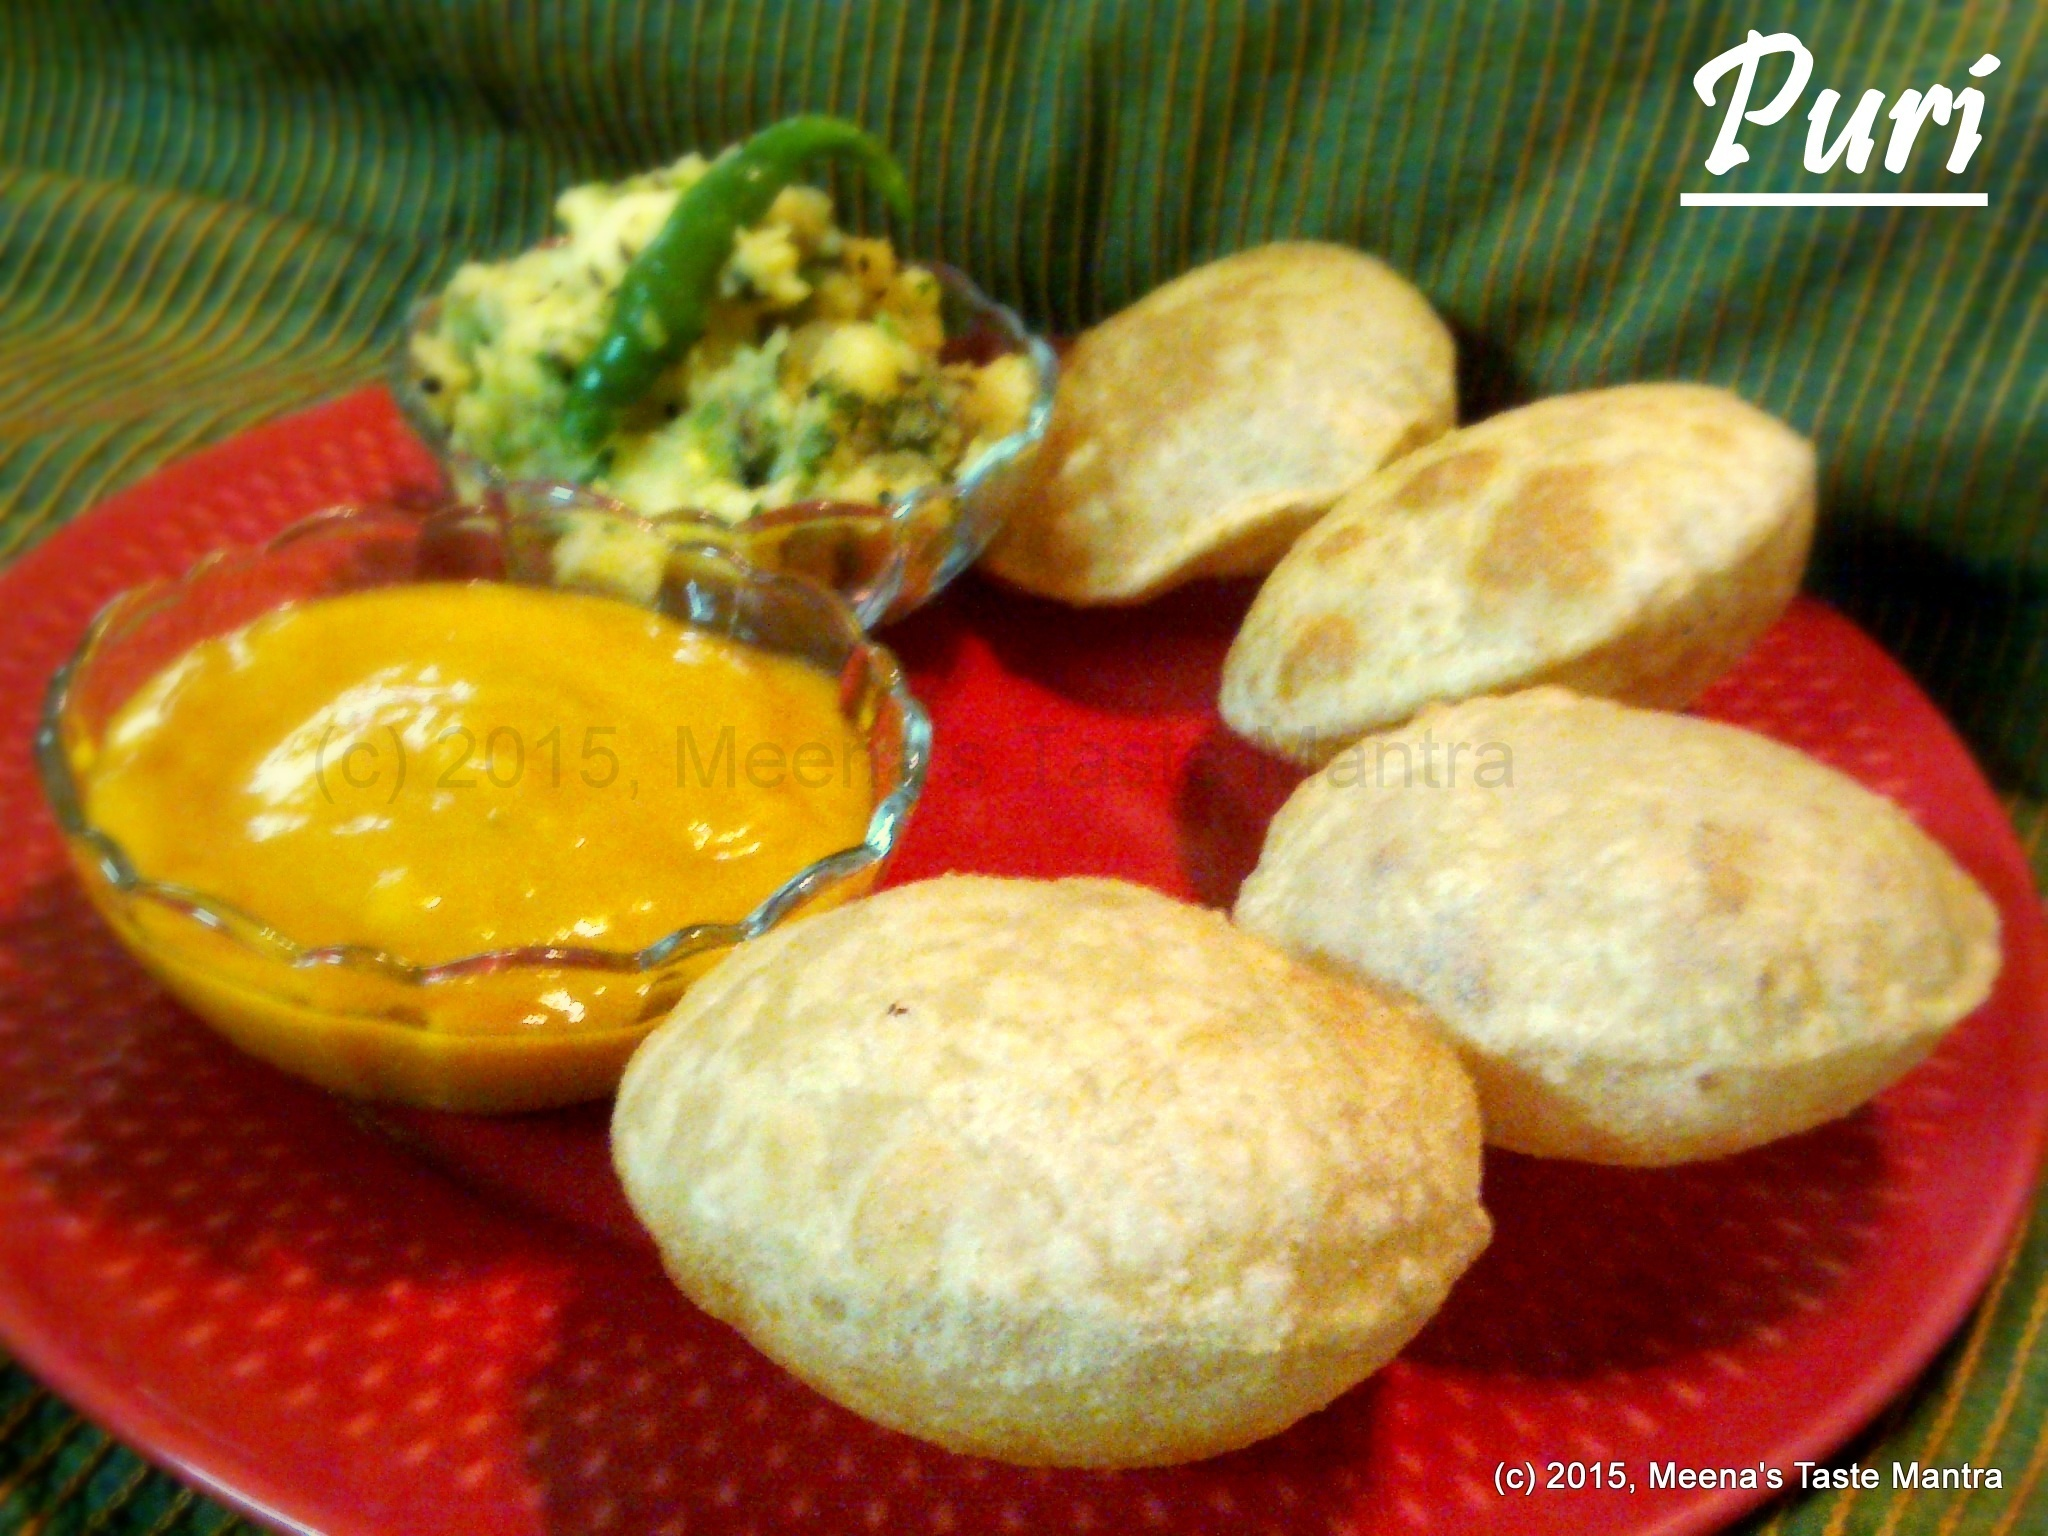 Puri | Poori - deep fried unleavened Indian flat bread